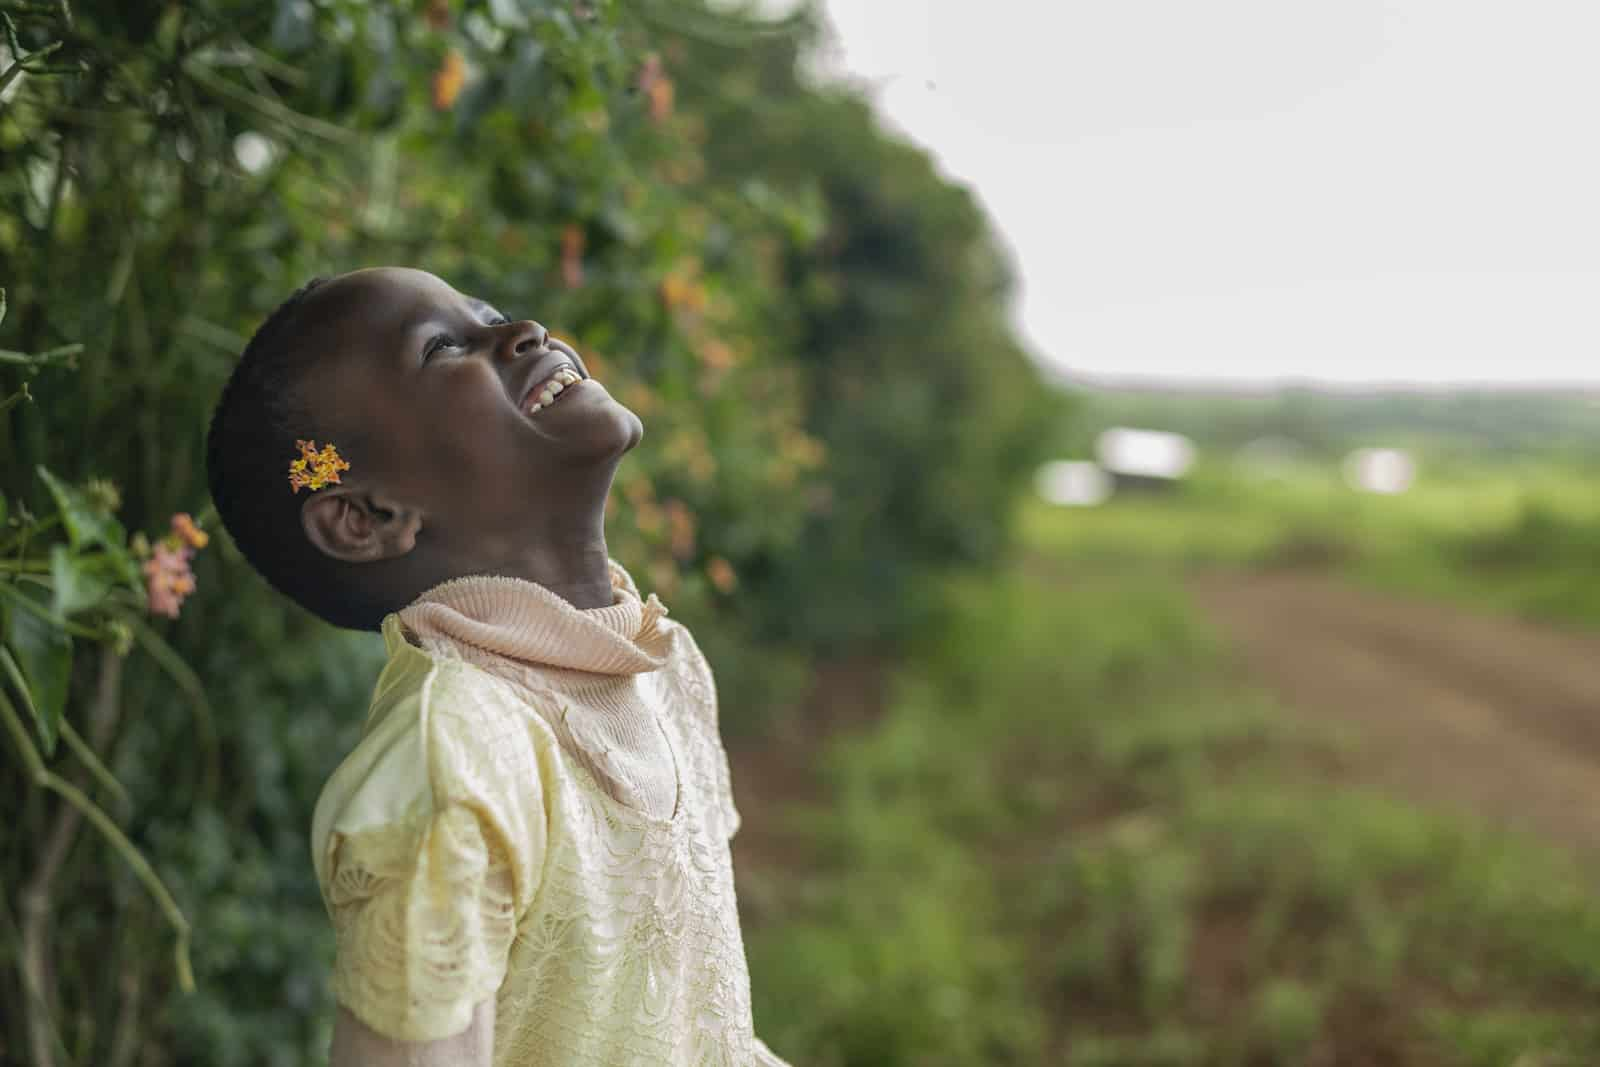 A girl throws her head back and smiles.